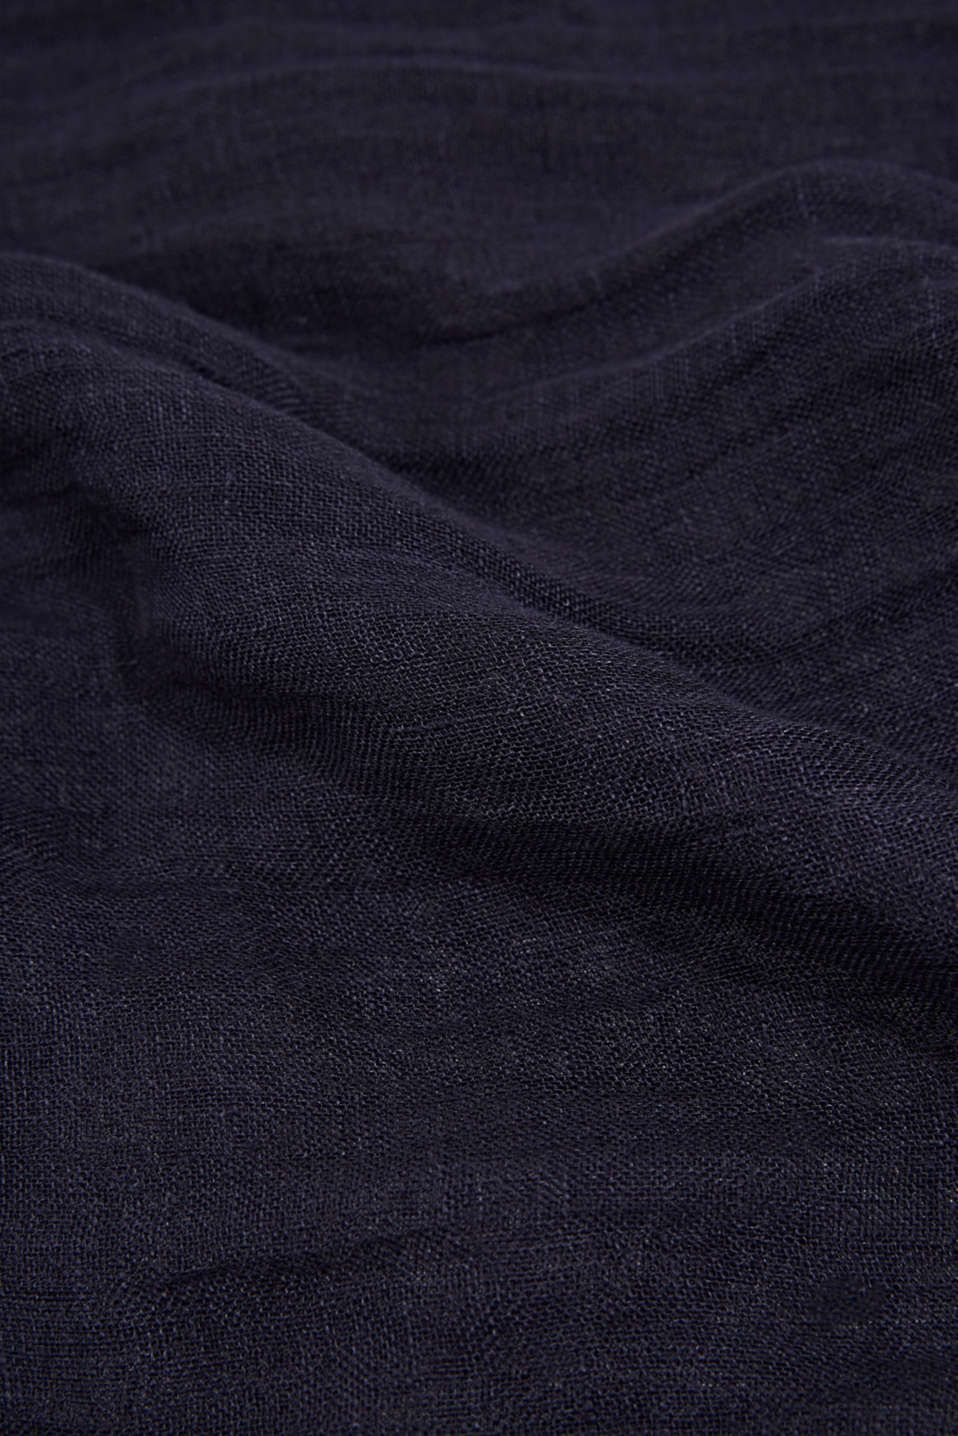 Woven scarf made of 100% linen, NAVY, detail image number 2